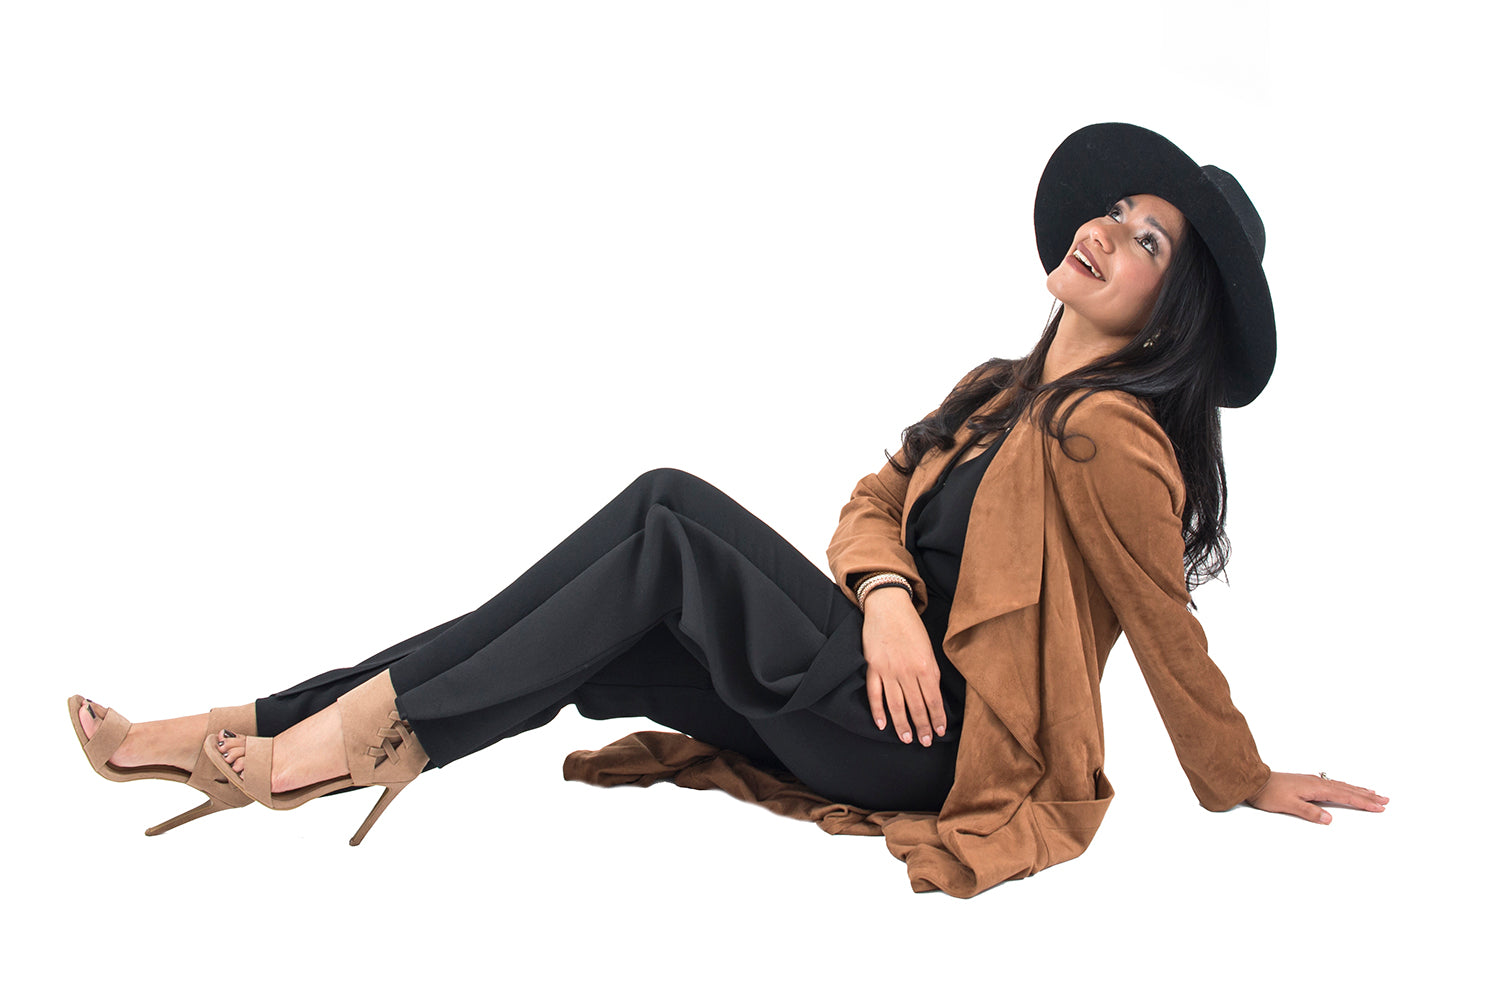 Eccentrics Boutique team style Andrea De Los Santos. Affordable women's clothing boutique.